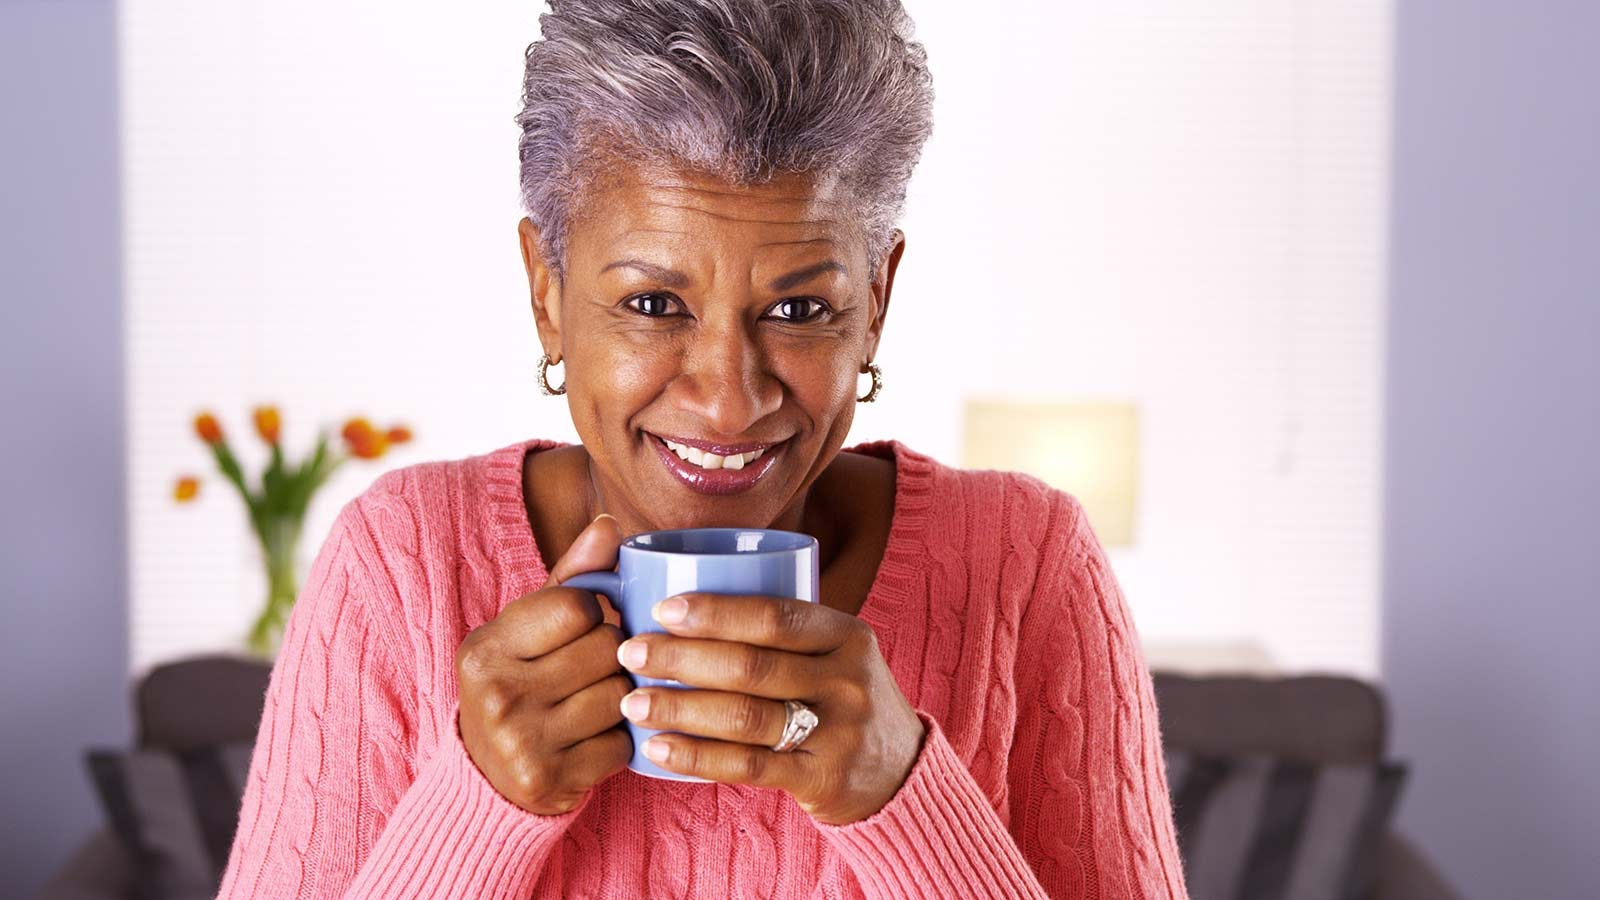 A grandmother drinking tea out of a pretty, lilac mug.